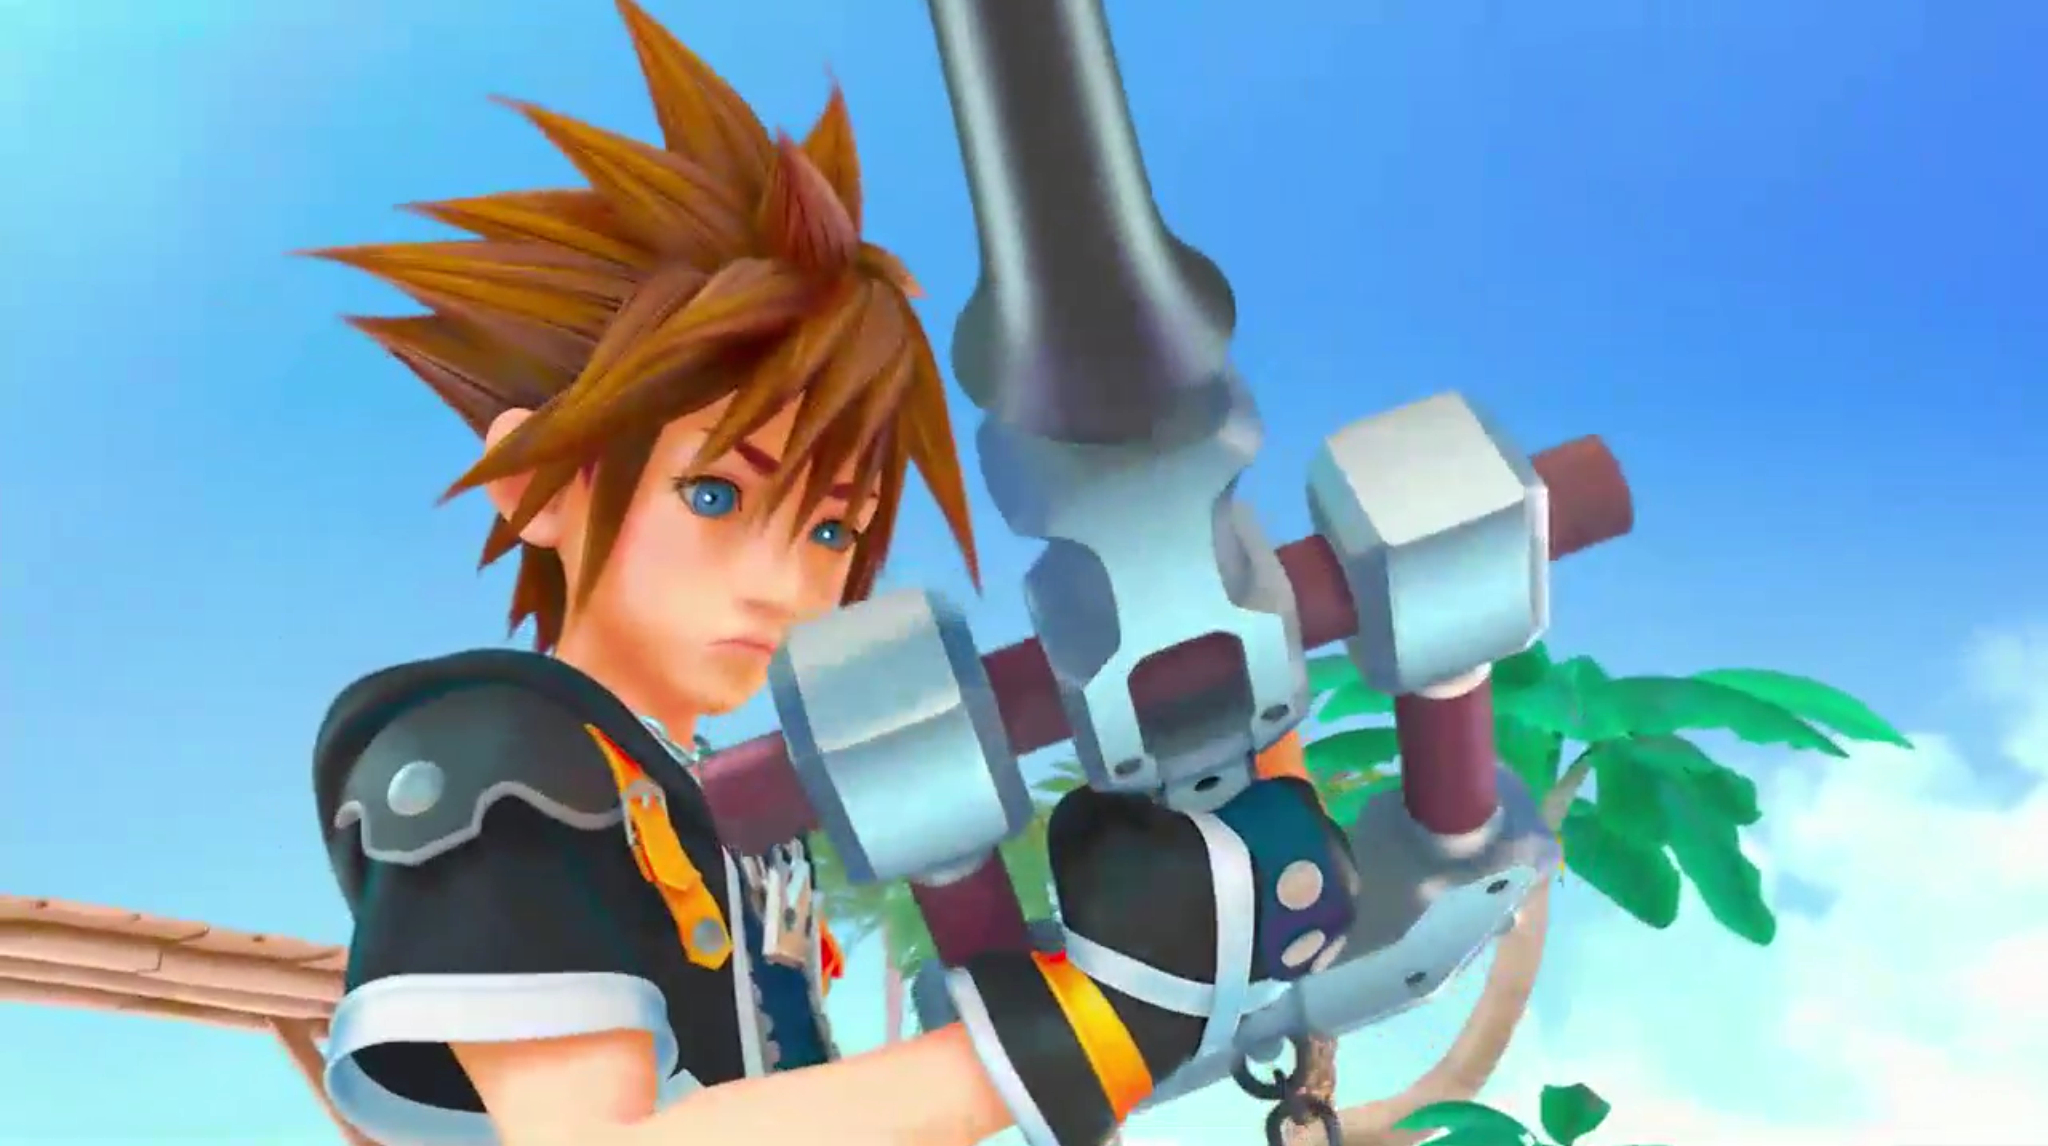 Kingdom Hearts III Sora